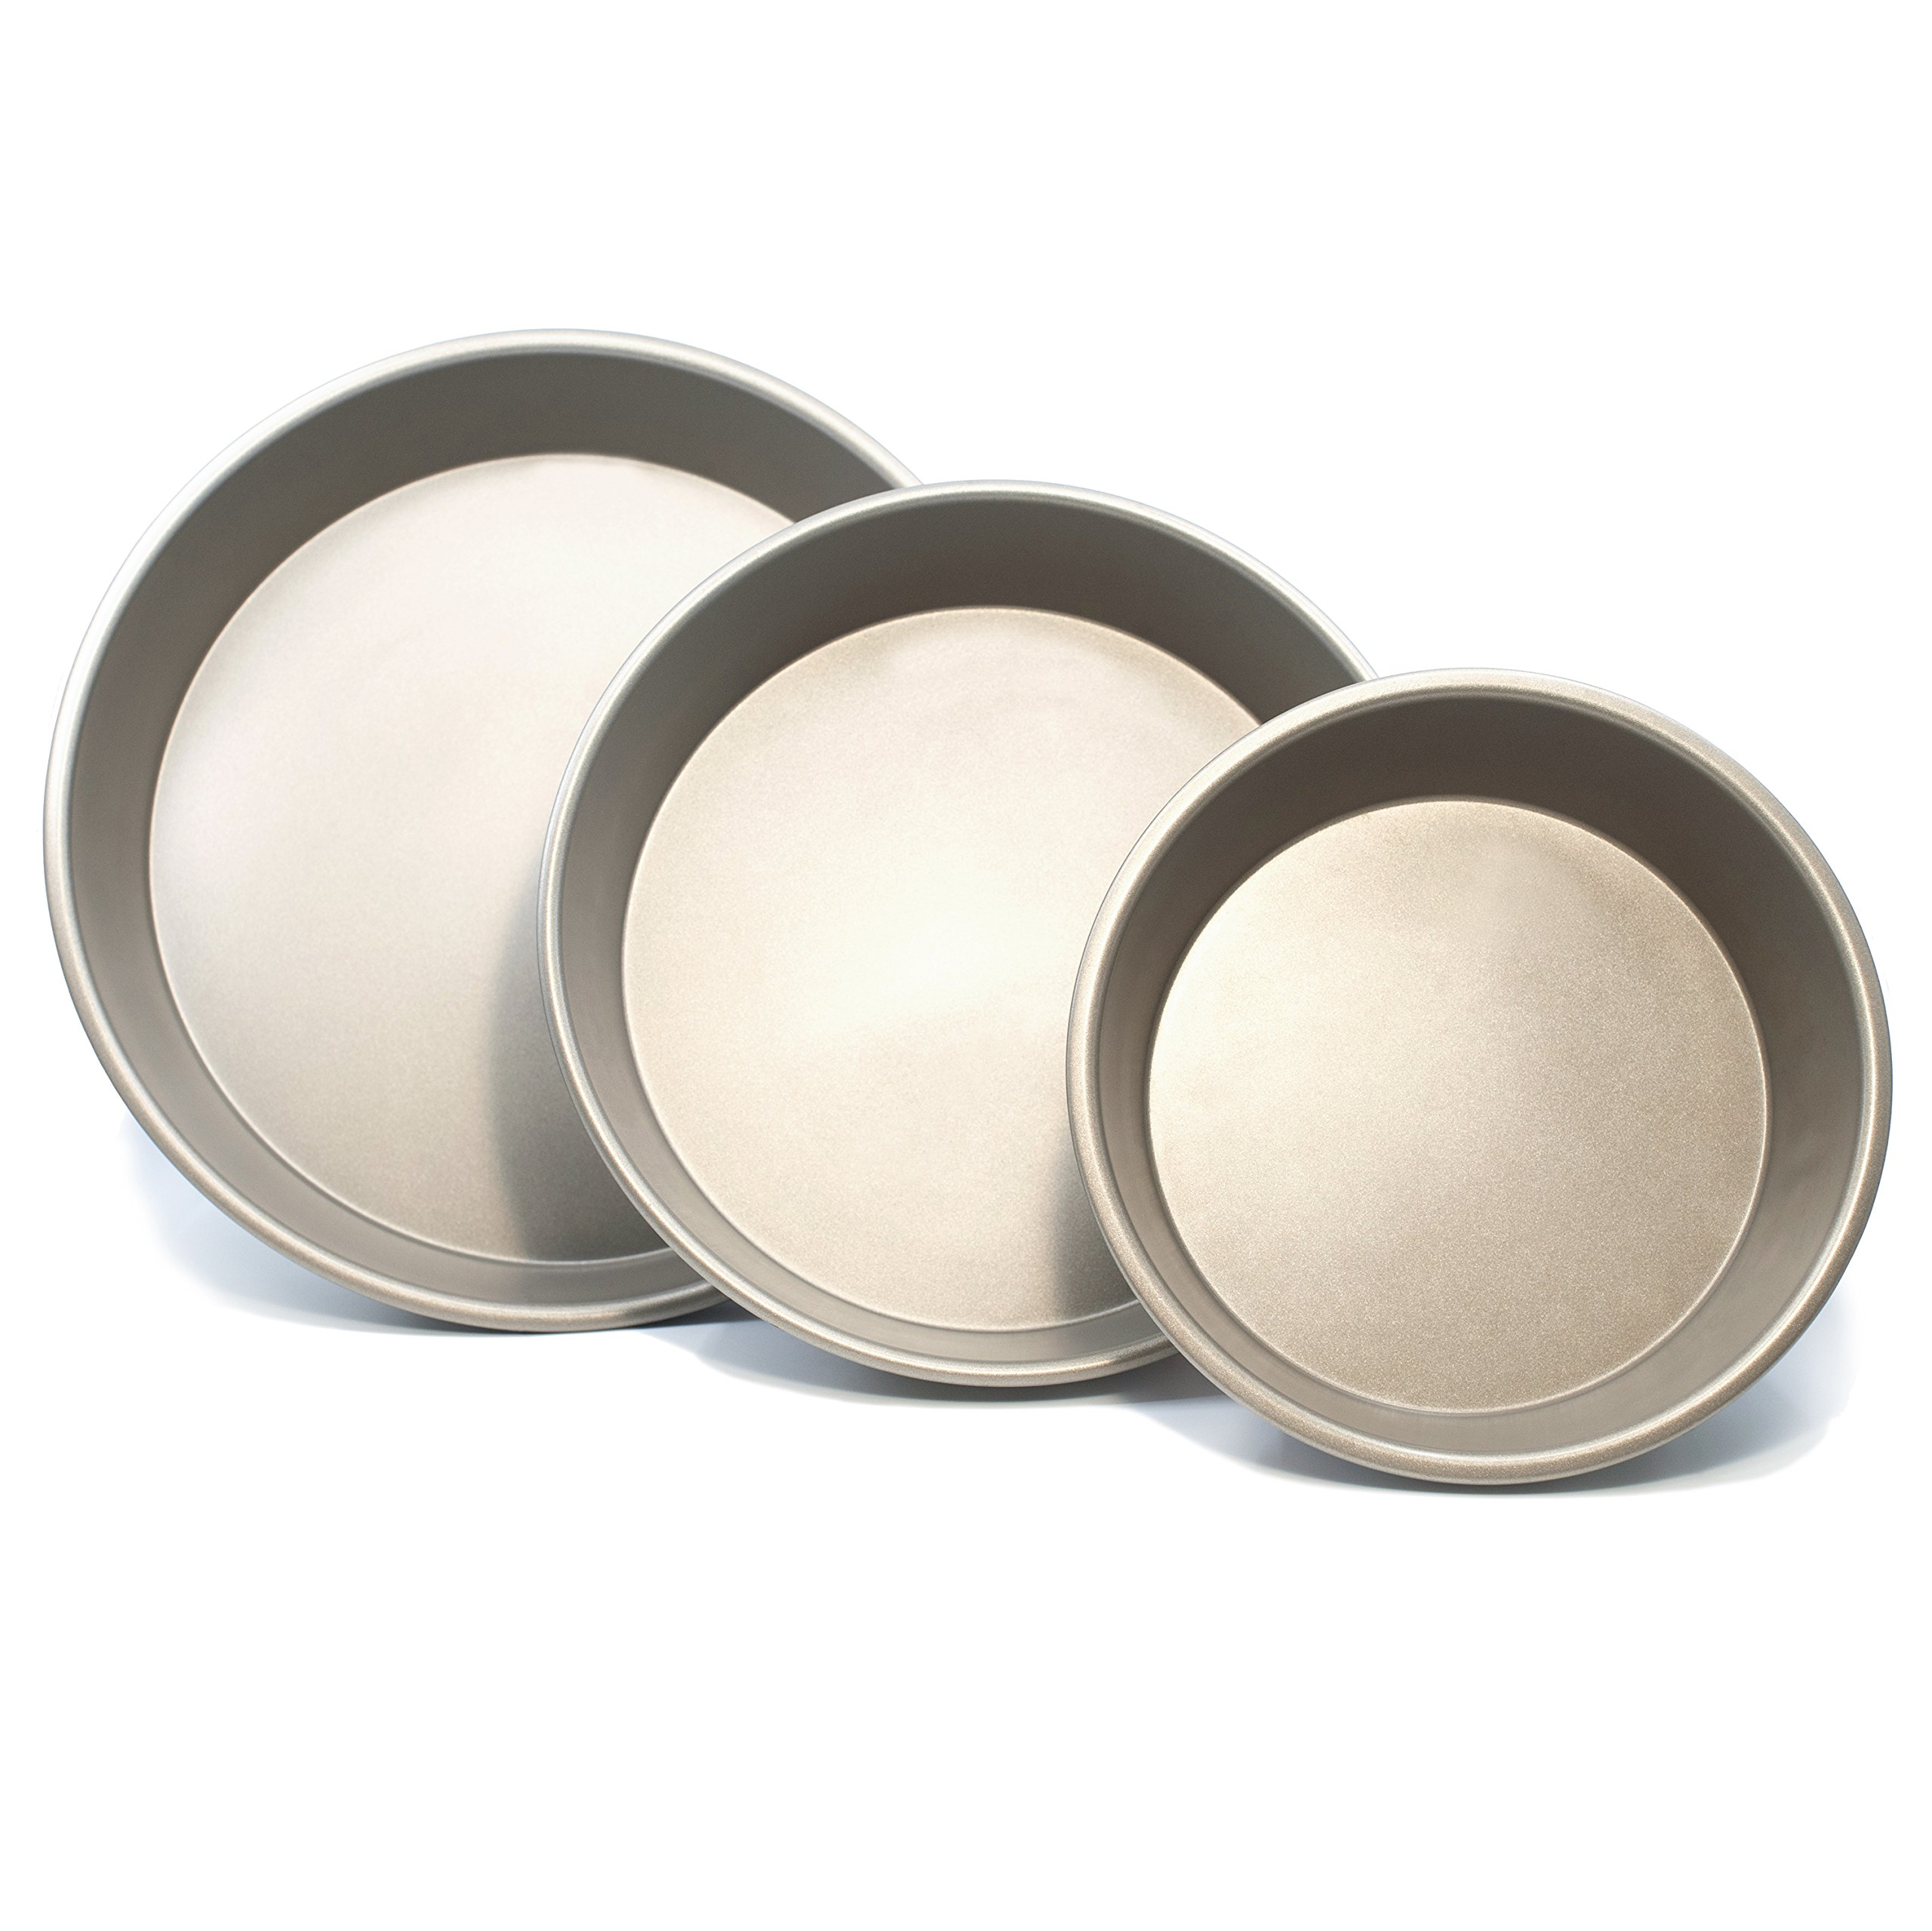 Bakers Guild - Cake Pans - Round - Set of 3